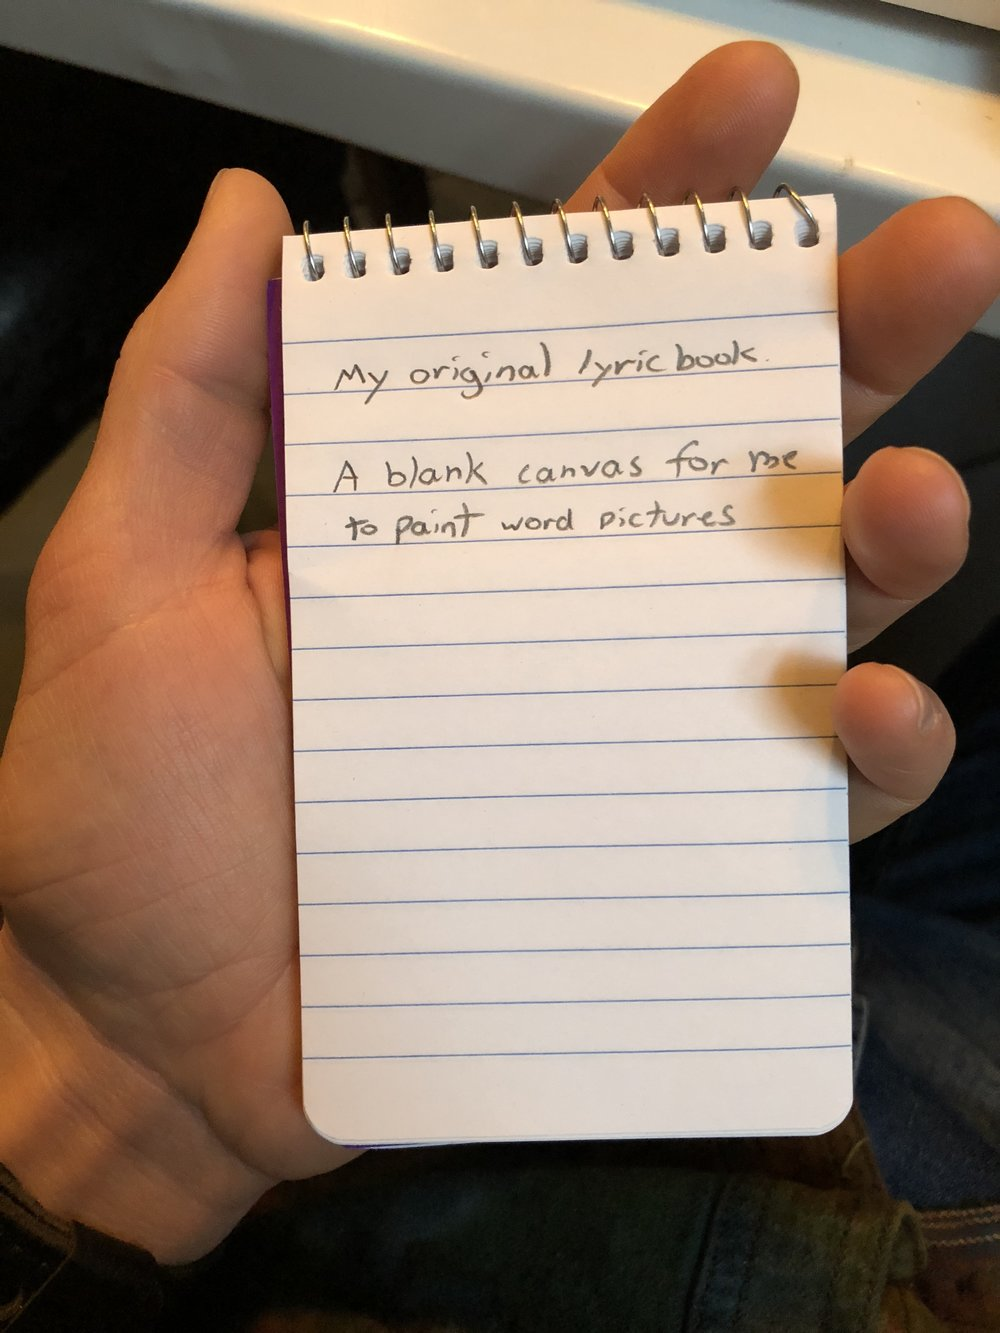 In searching through old keepsake bins in my basement, I couldn't find my original lyric box containing all of the various versions of my original notepads, but this pictures shows how discrete my powerful new weapon could be.